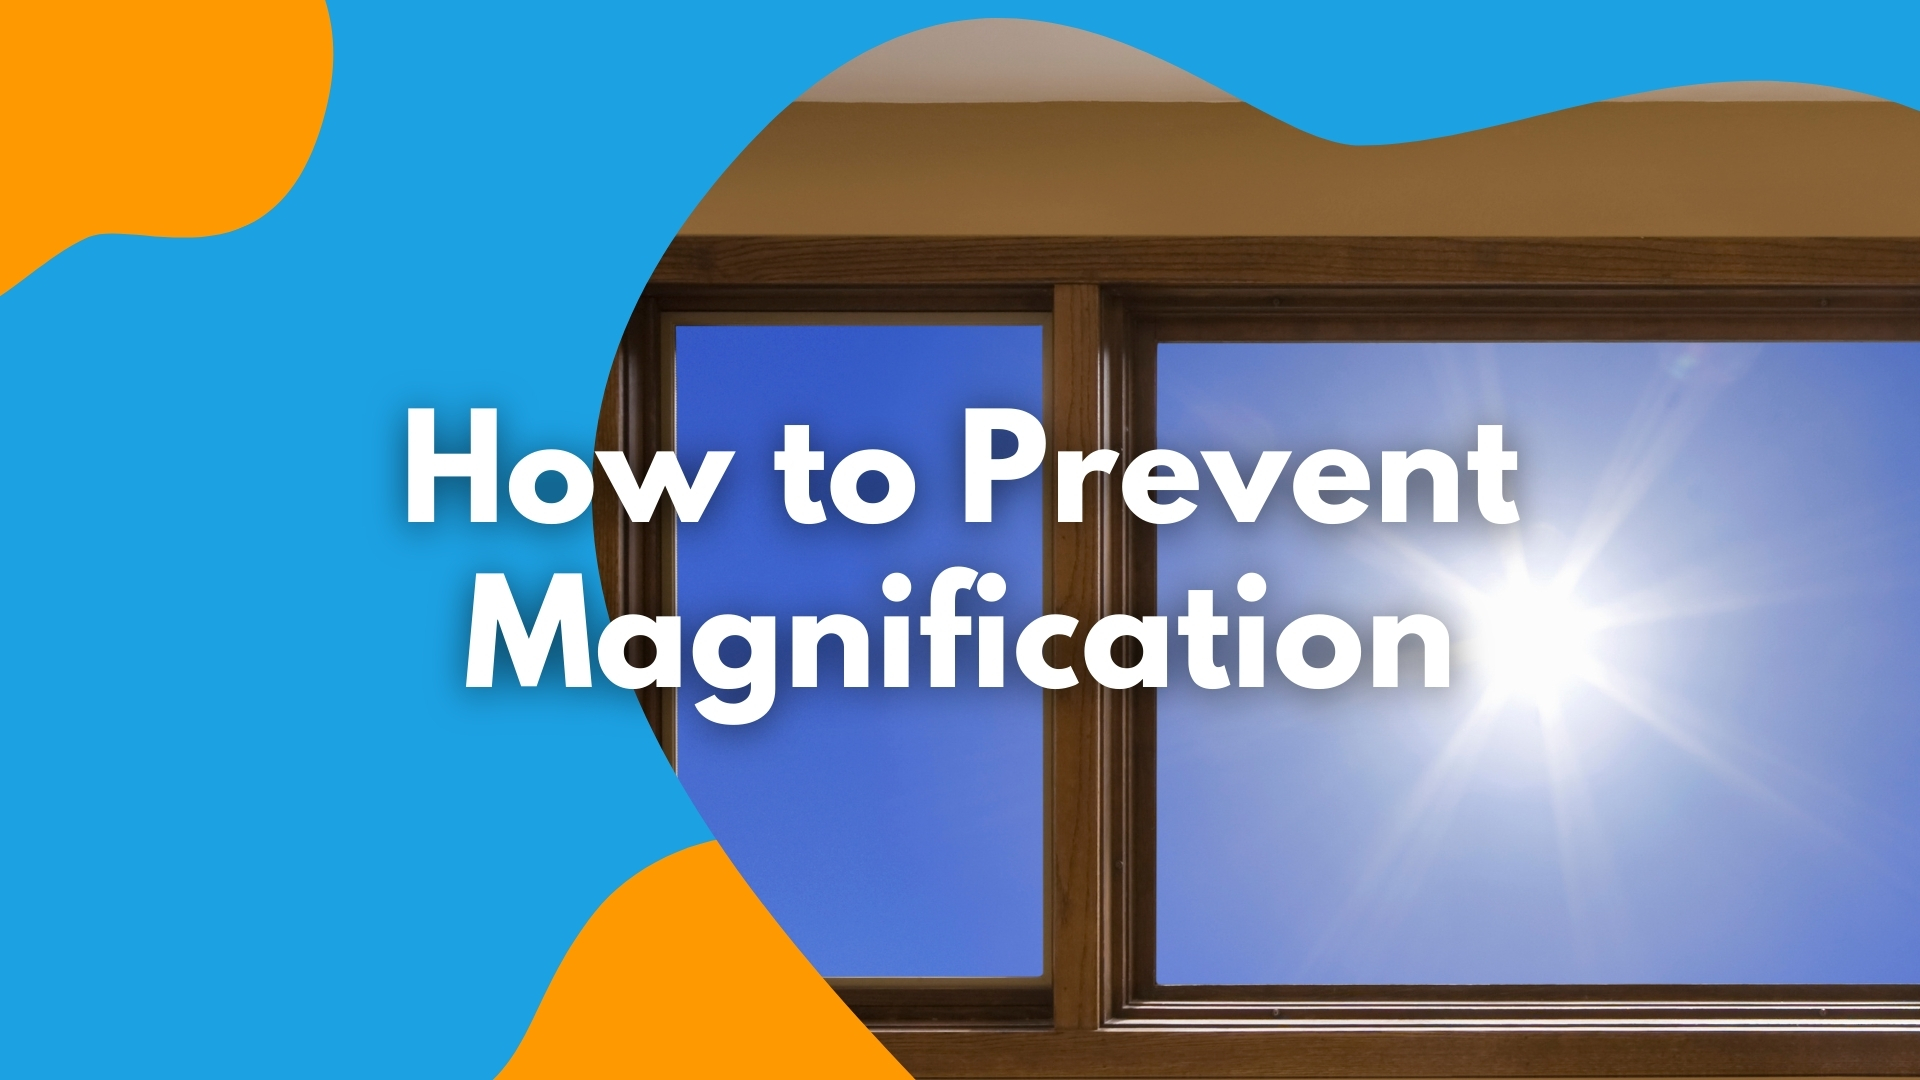 How to Prevent Magnification